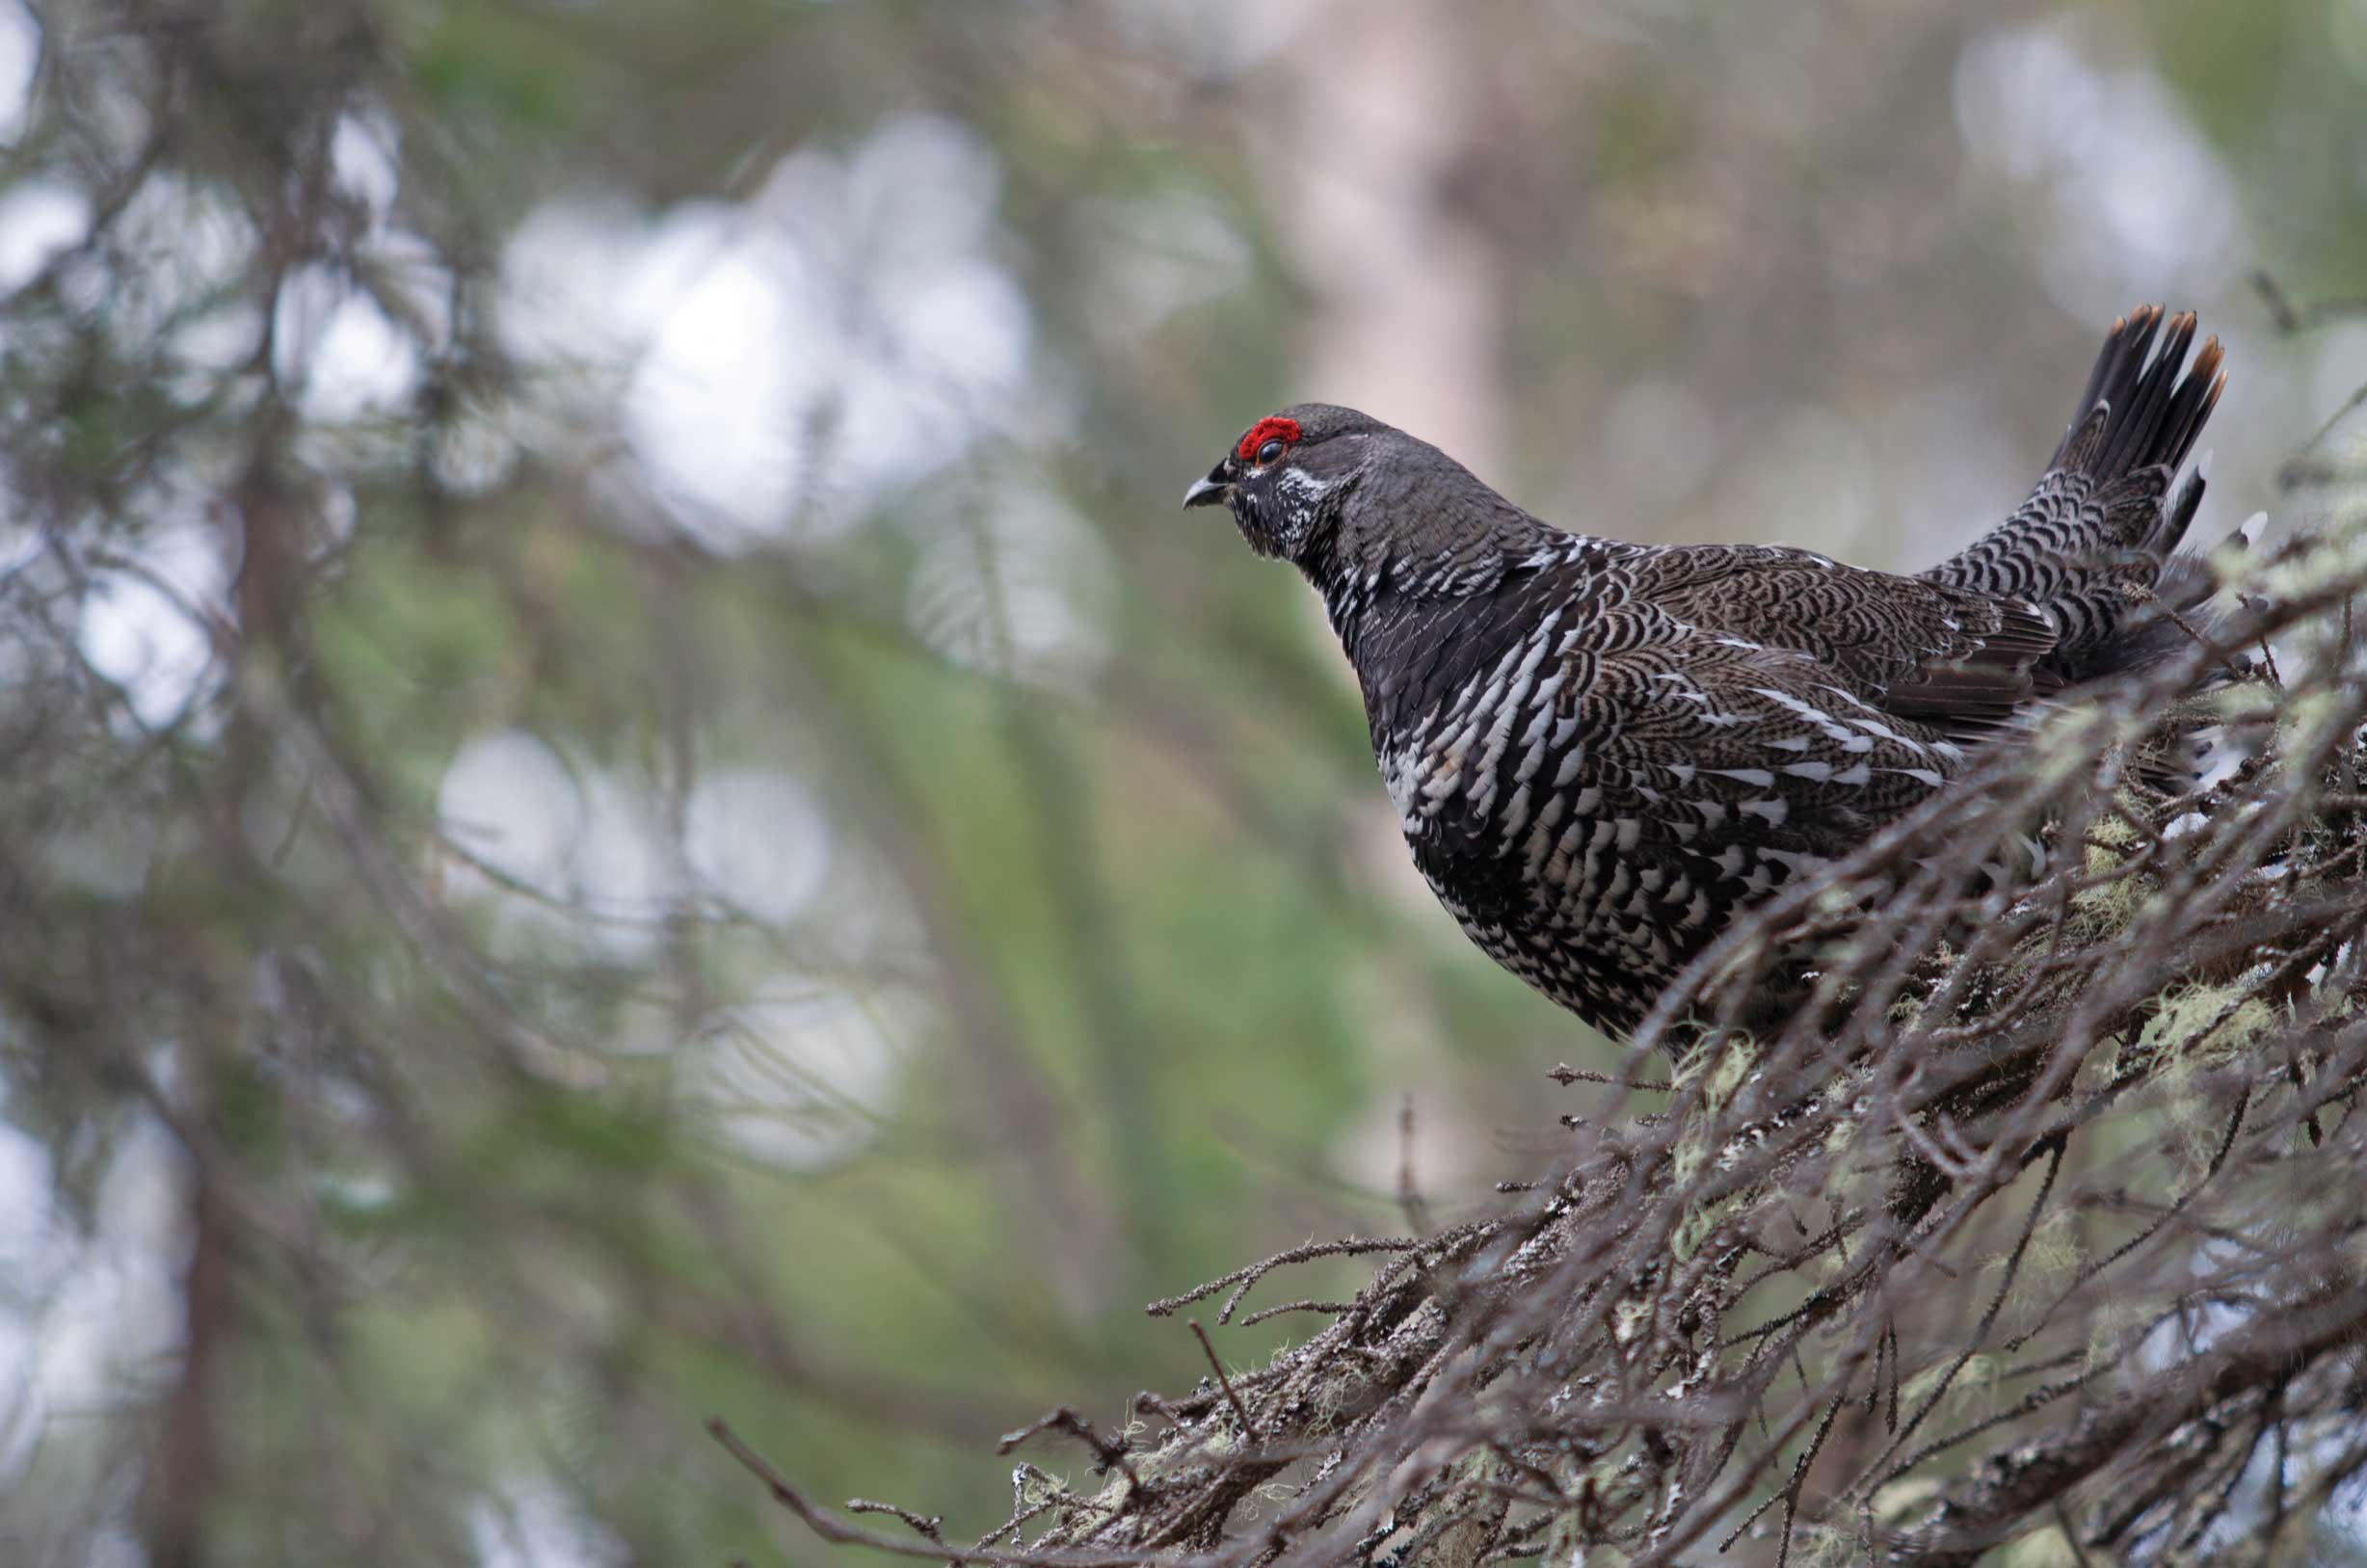 Spruce grouse males are easy to identify with their red eyebrow. Photo by iStock.